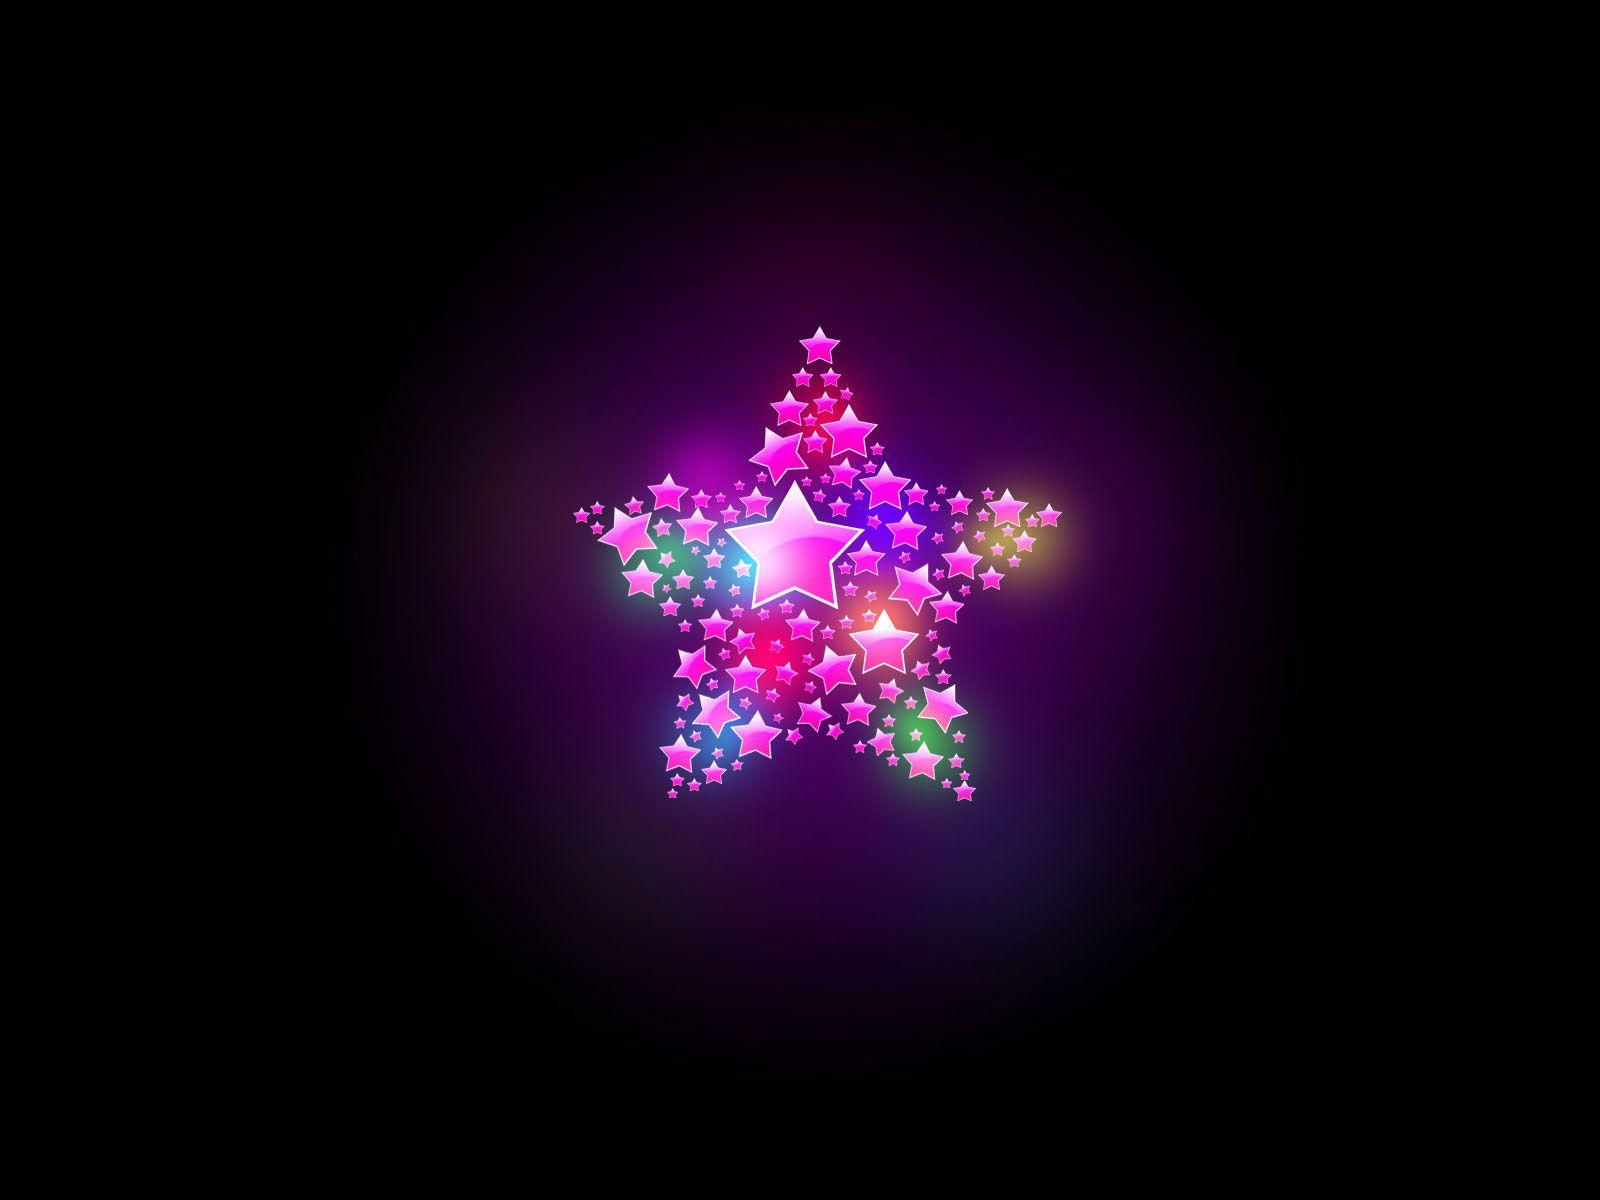 Colorful Star Wallpapers - Wallpaper Cave